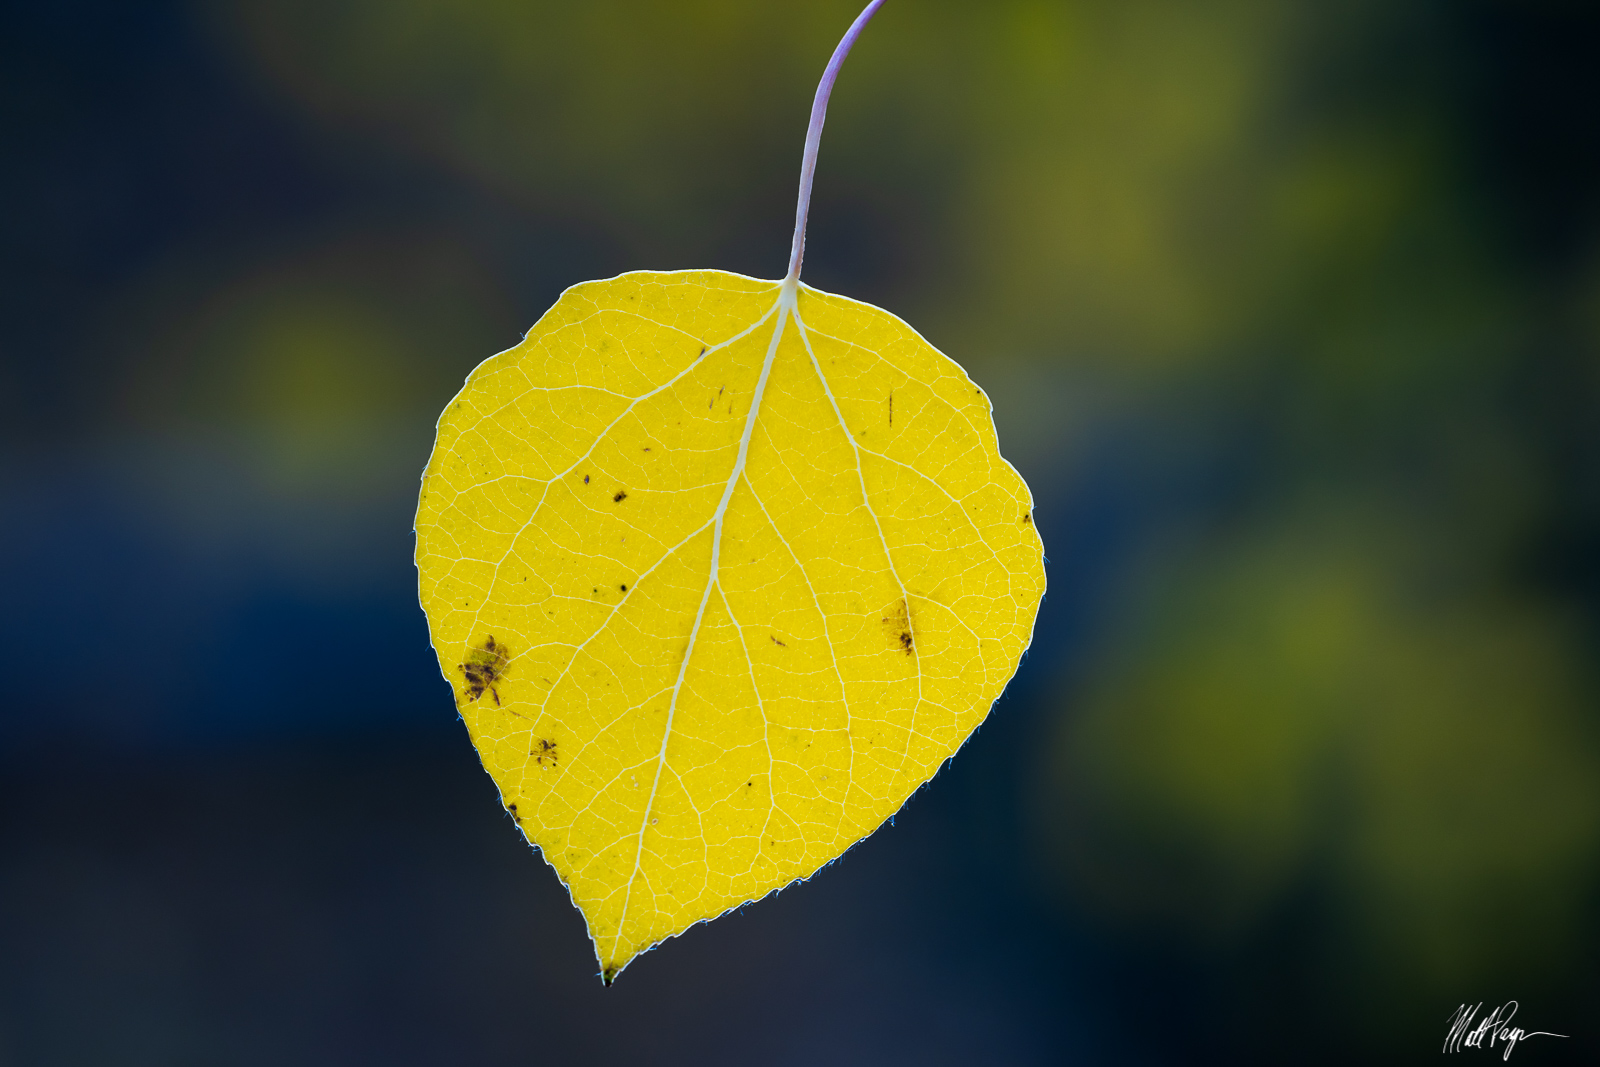 Nothing special here - just a single yellow aspen leaf blowing in the wind in a Colorado forest at dawn in autumn. Fall is magic...